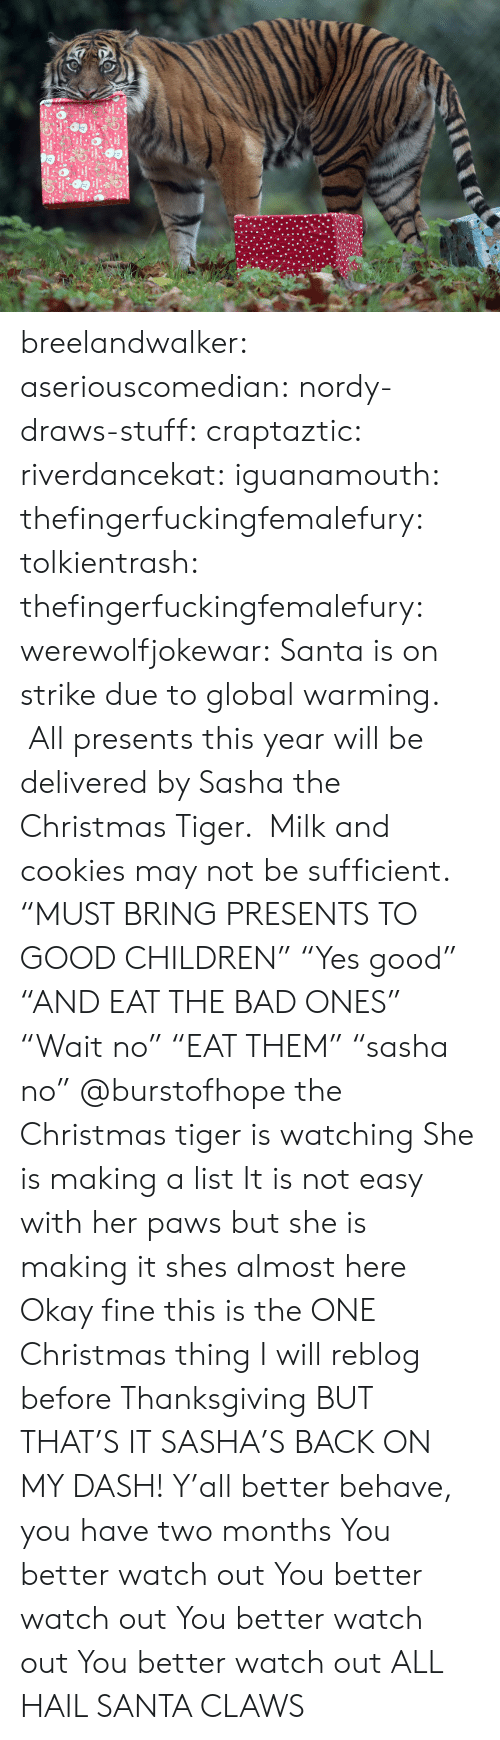 "Paws: breelandwalker:  aseriouscomedian:  nordy-draws-stuff:   craptaztic:  riverdancekat:  iguanamouth:  thefingerfuckingfemalefury:  tolkientrash:  thefingerfuckingfemalefury:  werewolfjokewar:  Santa is on strike due to global warming.  All presents this year will be delivered by Sasha the Christmas Tiger.  Milk and cookies may not be sufficient.  ""MUST BRING PRESENTS TO GOOD CHILDREN"" ""Yes good"" ""AND EAT THE BAD ONES""  ""Wait no"" ""EAT THEM"" ""sasha no""   @burstofhope the Christmas tiger is watching  She is making a list  It is not easy with her paws but she is making it   shes almost here   Okay fine this is the ONE Christmas thing I will reblog before Thanksgiving BUT THAT'S IT  SASHA'S BACK ON MY DASH!  Y'all better behave, you have two months   You better watch out You better watch out You better watch out You better watch out  ALL HAIL SANTA CLAWS"